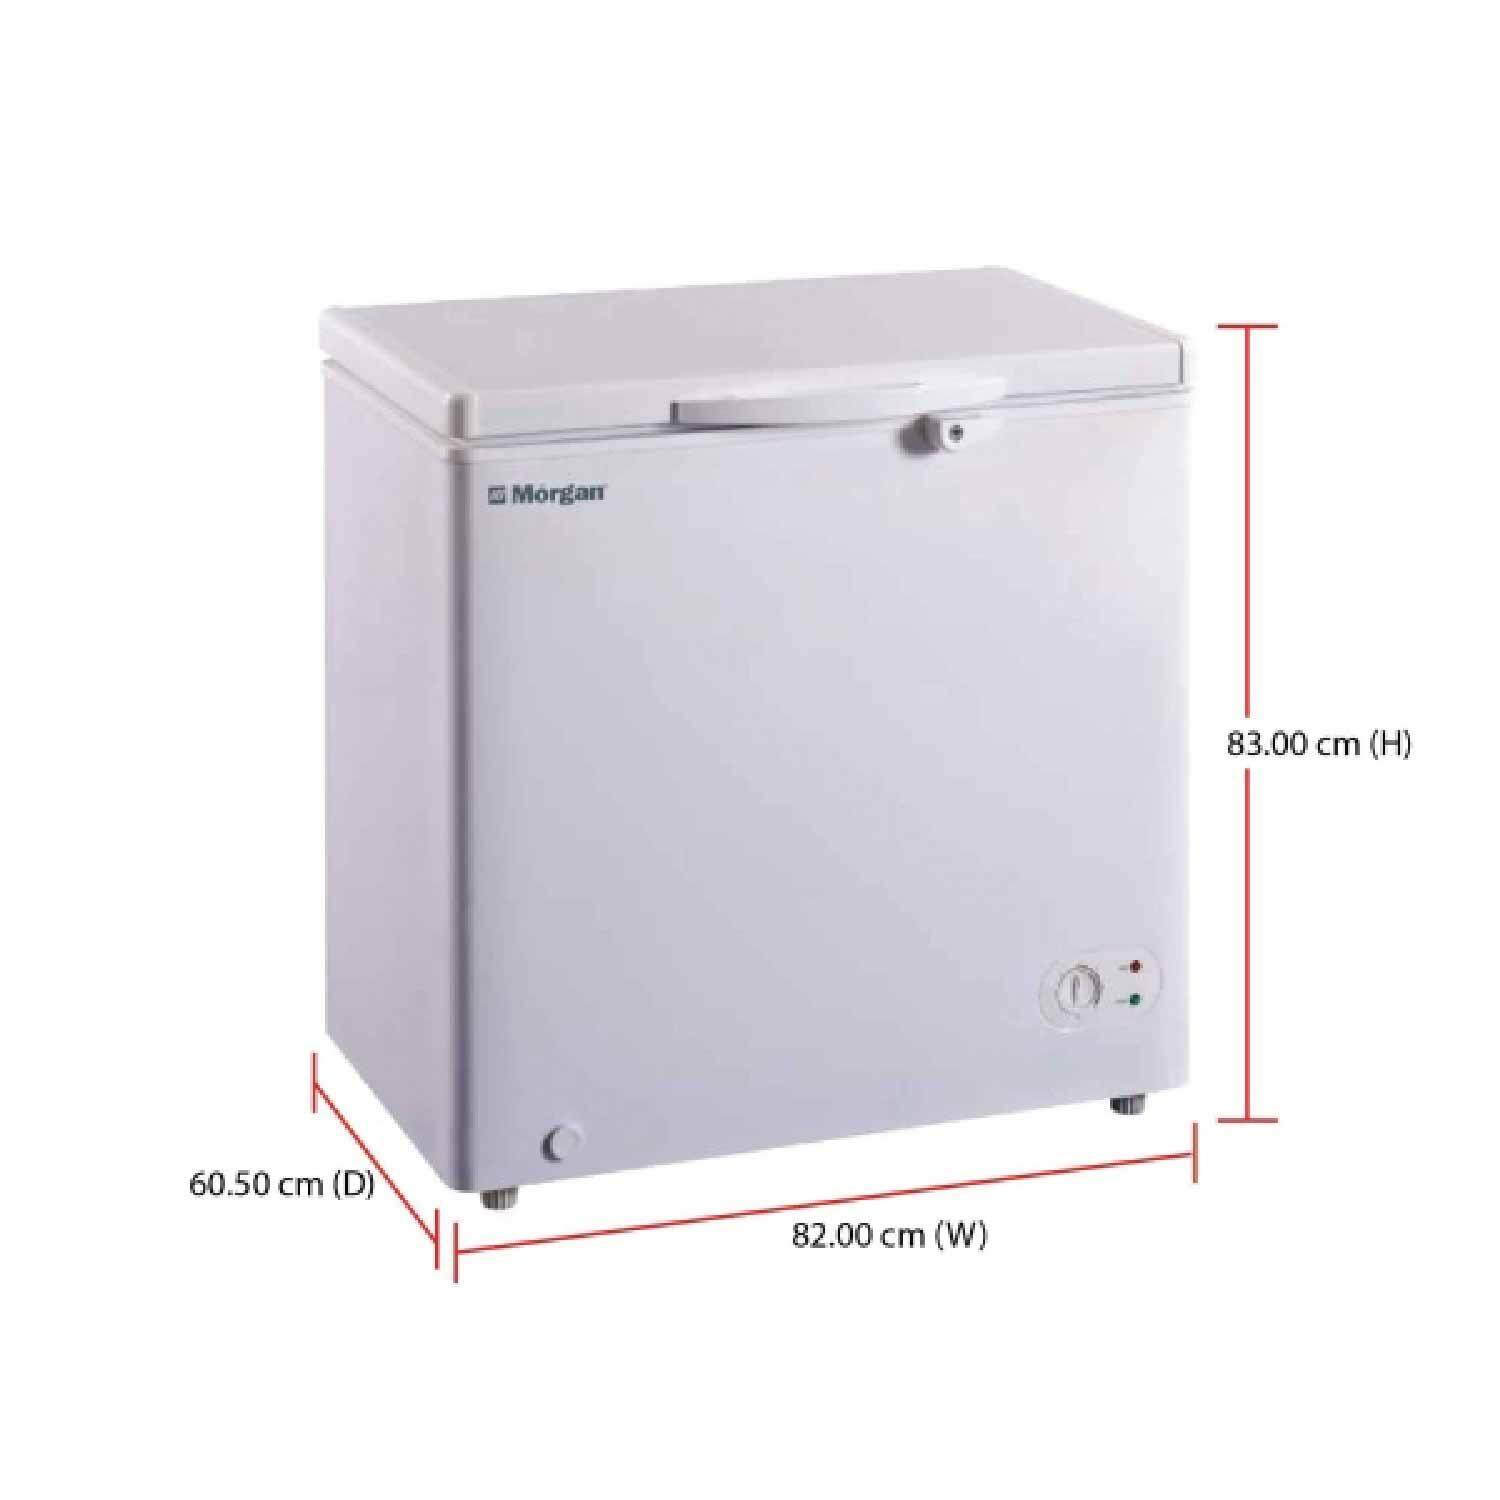 Freezer Buy At Best Price In Malaysia 100 Chest Box Morgan Mcf 1757l 155l Fridge Adjustable Thermostat